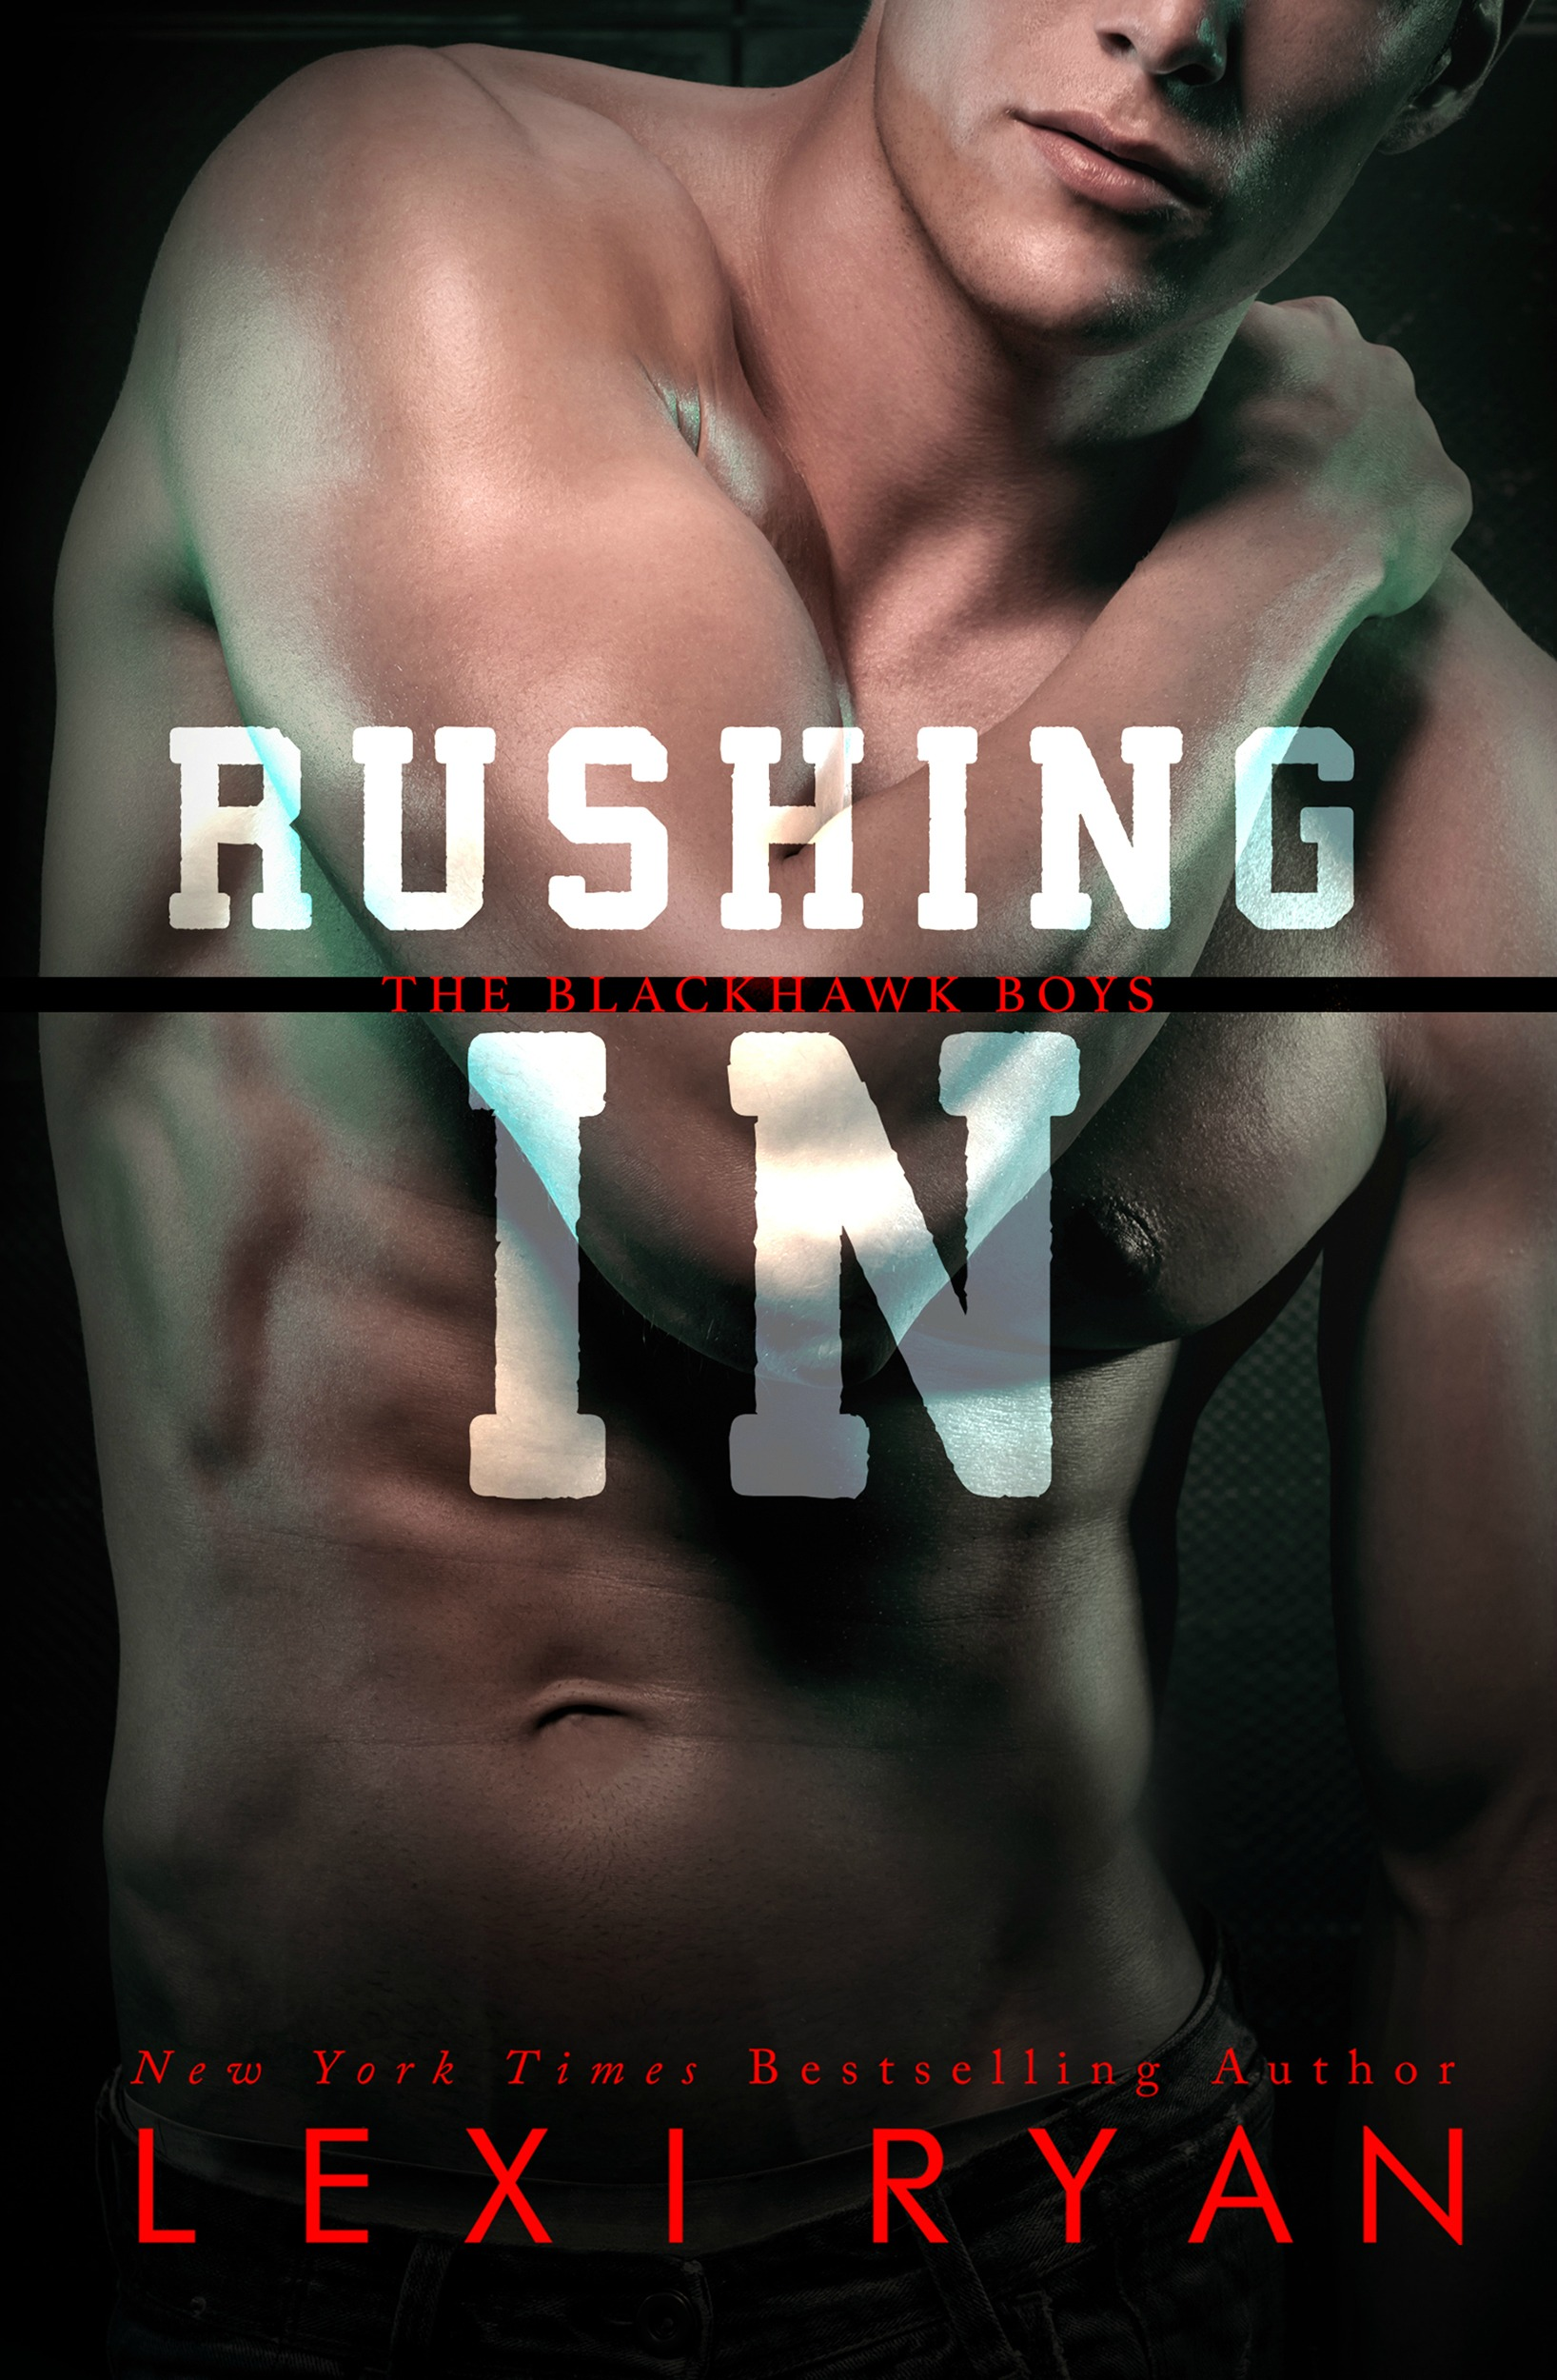 Book 2 - RUSHING IN (Christopher's story)   Amazon US    Amazon UK    Amazon CA    Amazon AU    B&N    Kobo   iBooks   Google Play